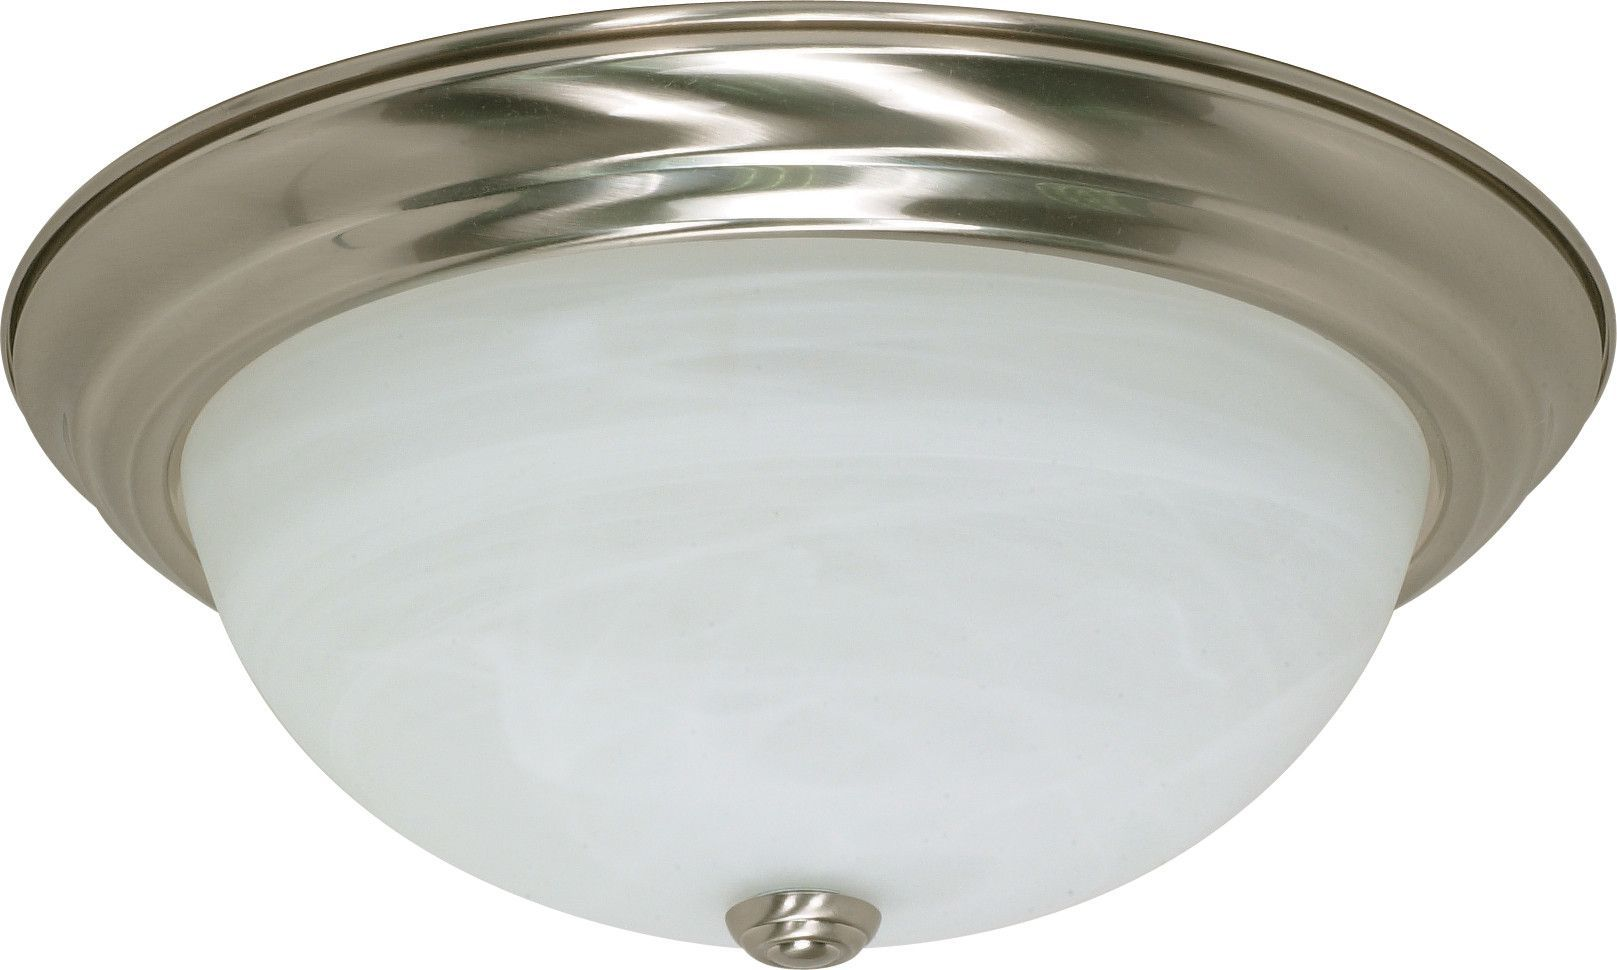 """3 Light ES 15"""" Flush Fixtue with Alabaster Glass - (3) 13w GU24 Lamps Included"""